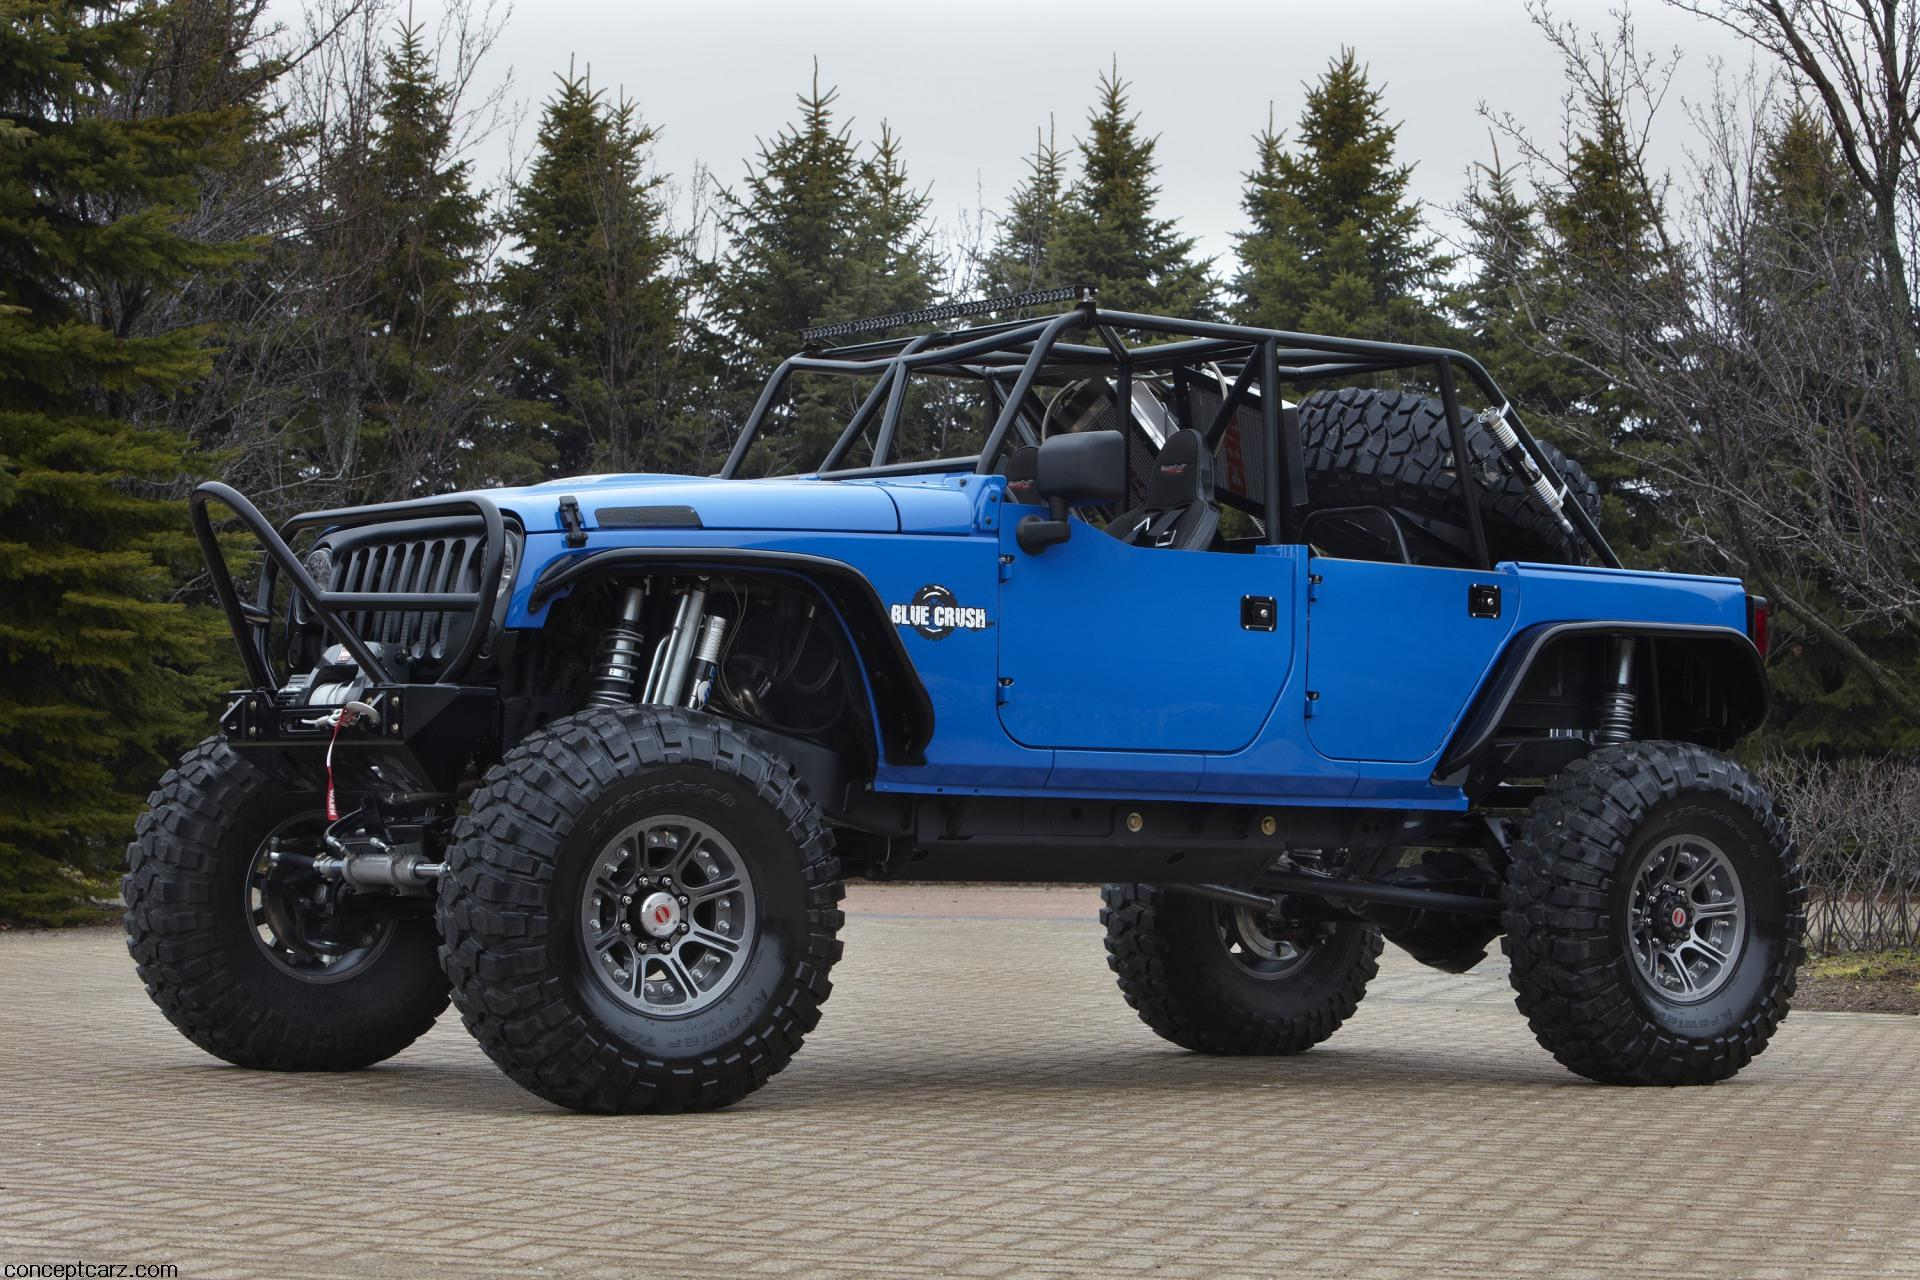 Jeep Wranger Blue Crush Image on 94 Toyota Pickup Interior